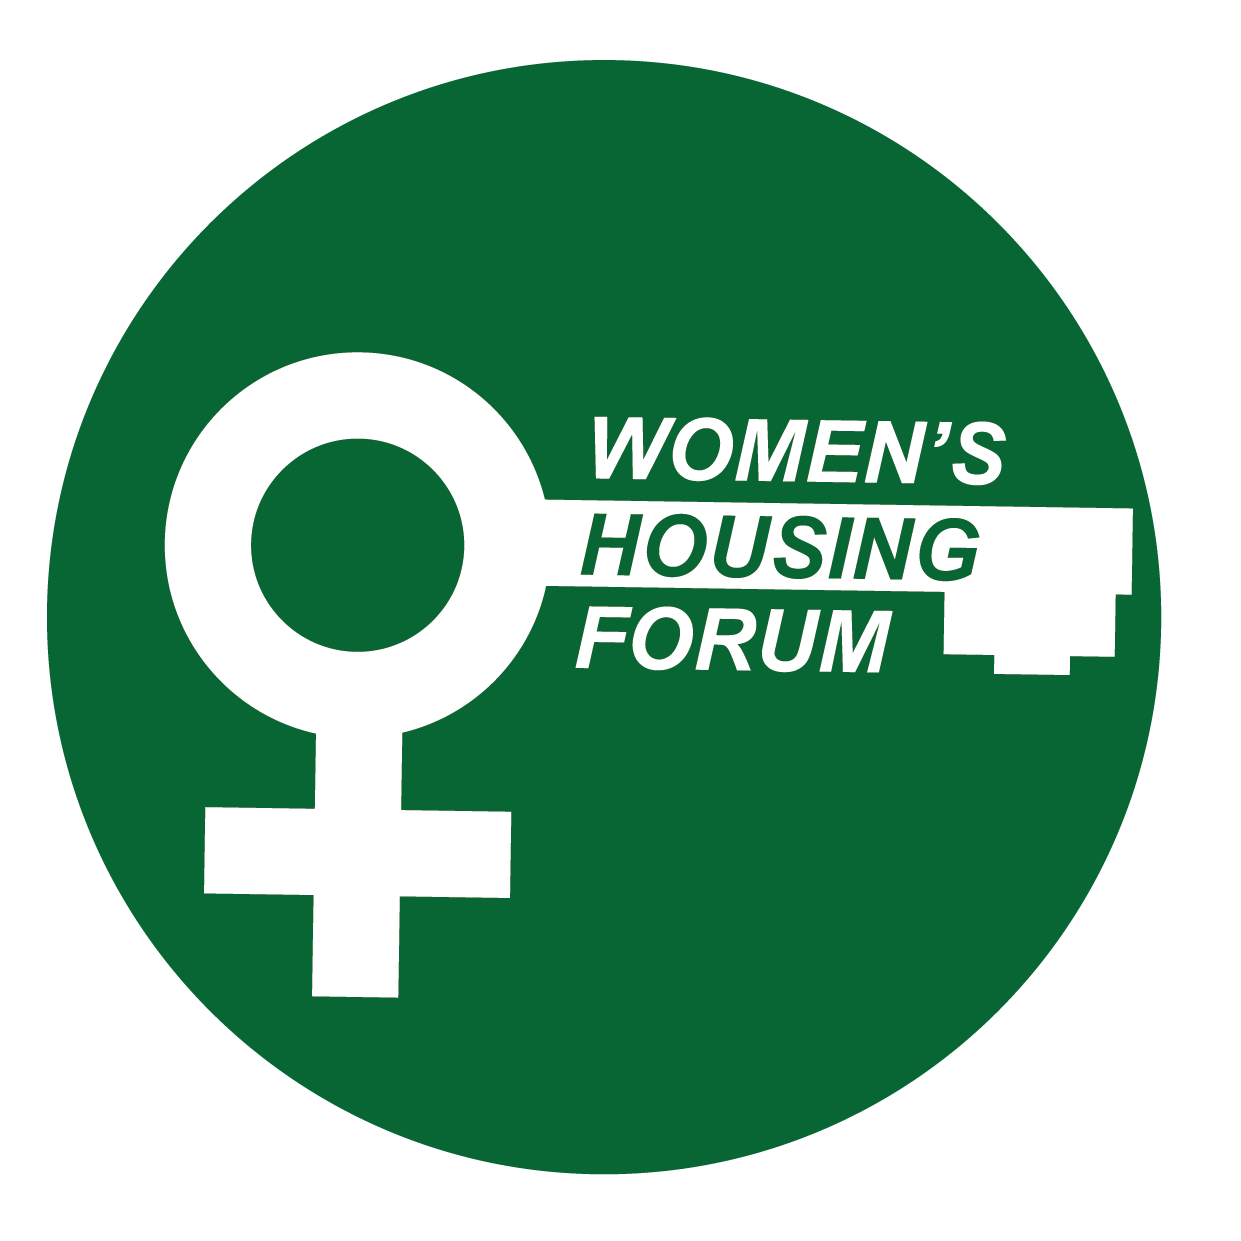 The Women's Housing Forum